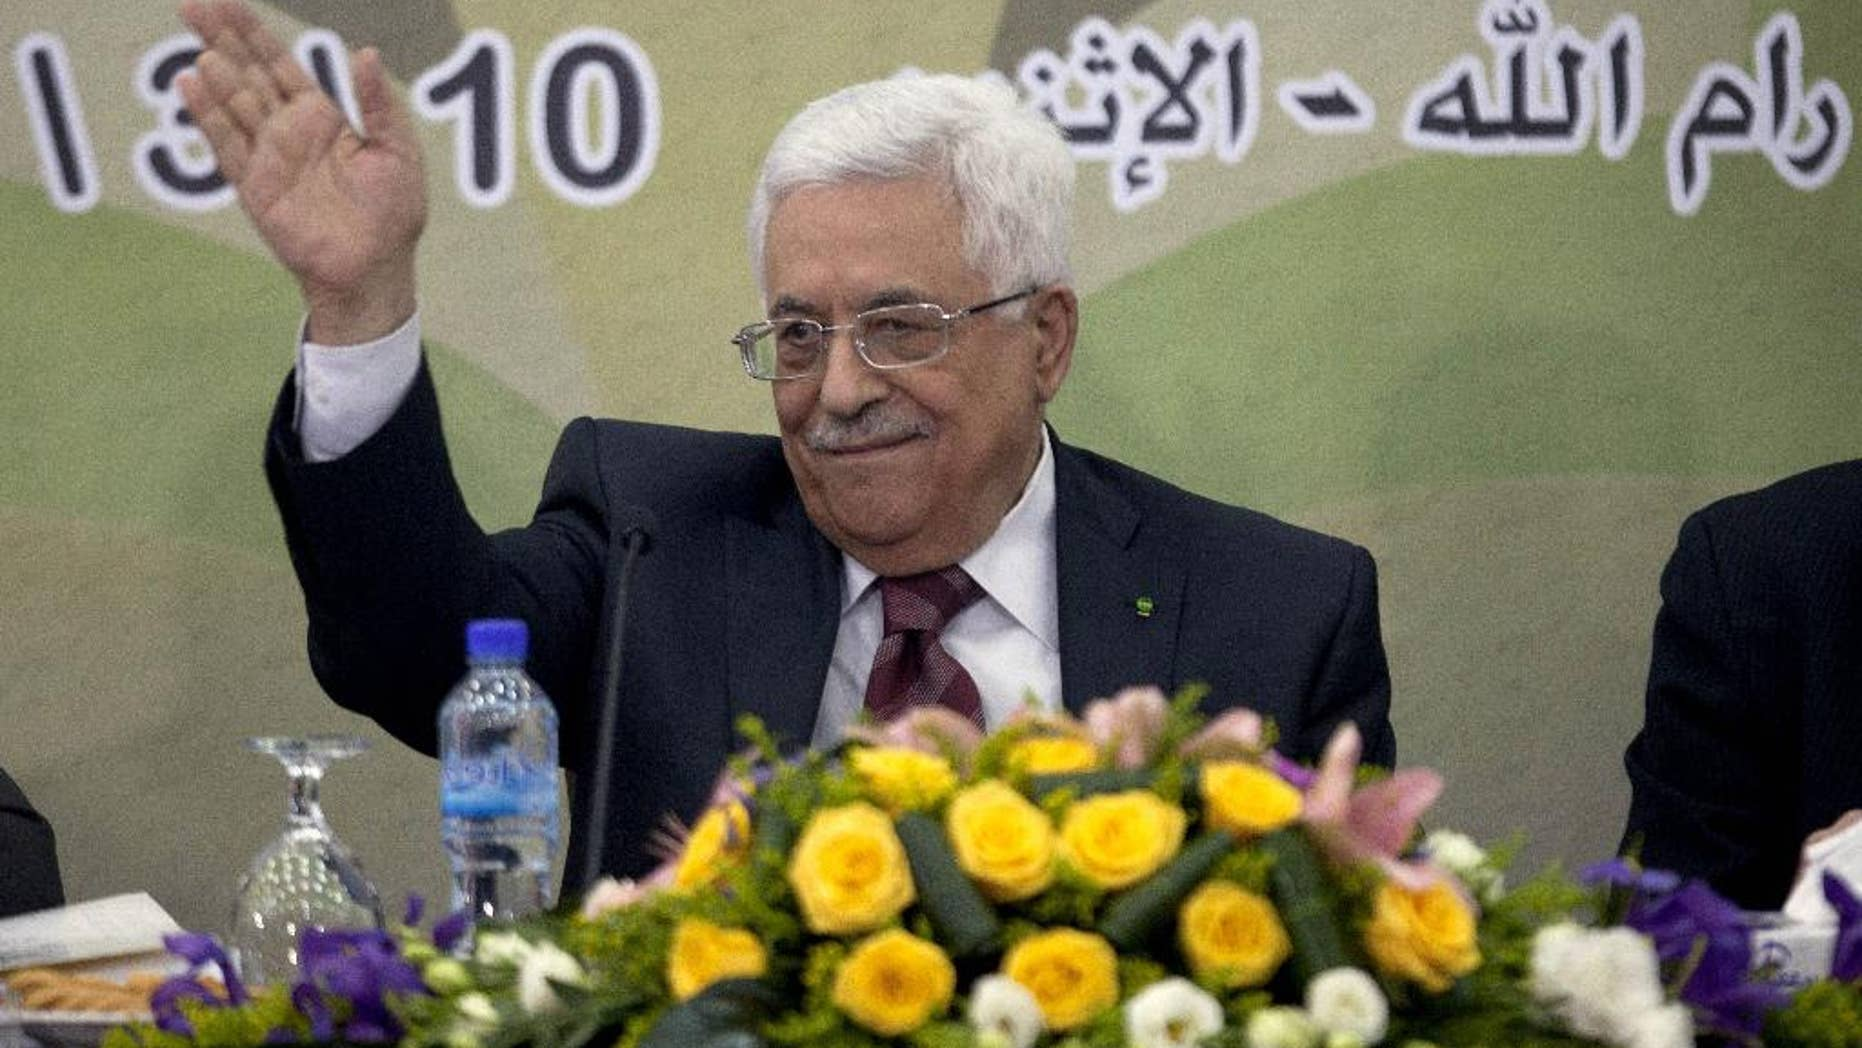 In this March 10, 2014 file photo, Palestinian President Mahmoud Abbas gestures during a meeting of the Fatah revolutionary council in the West Bank city of Ramallah. A long-running personal feud between Palestinian President Mahmoud Abbas and a former powerful operative in his Fatah movement has erupted into the open with public accusations of deceit and corruption. Abbas' hour-long tirade against the exiled Mohammed Dahlan signals the battle is heating up over who will one day succeed the 79-year-old president. (AP Photo/Majdi Mohammed, File)